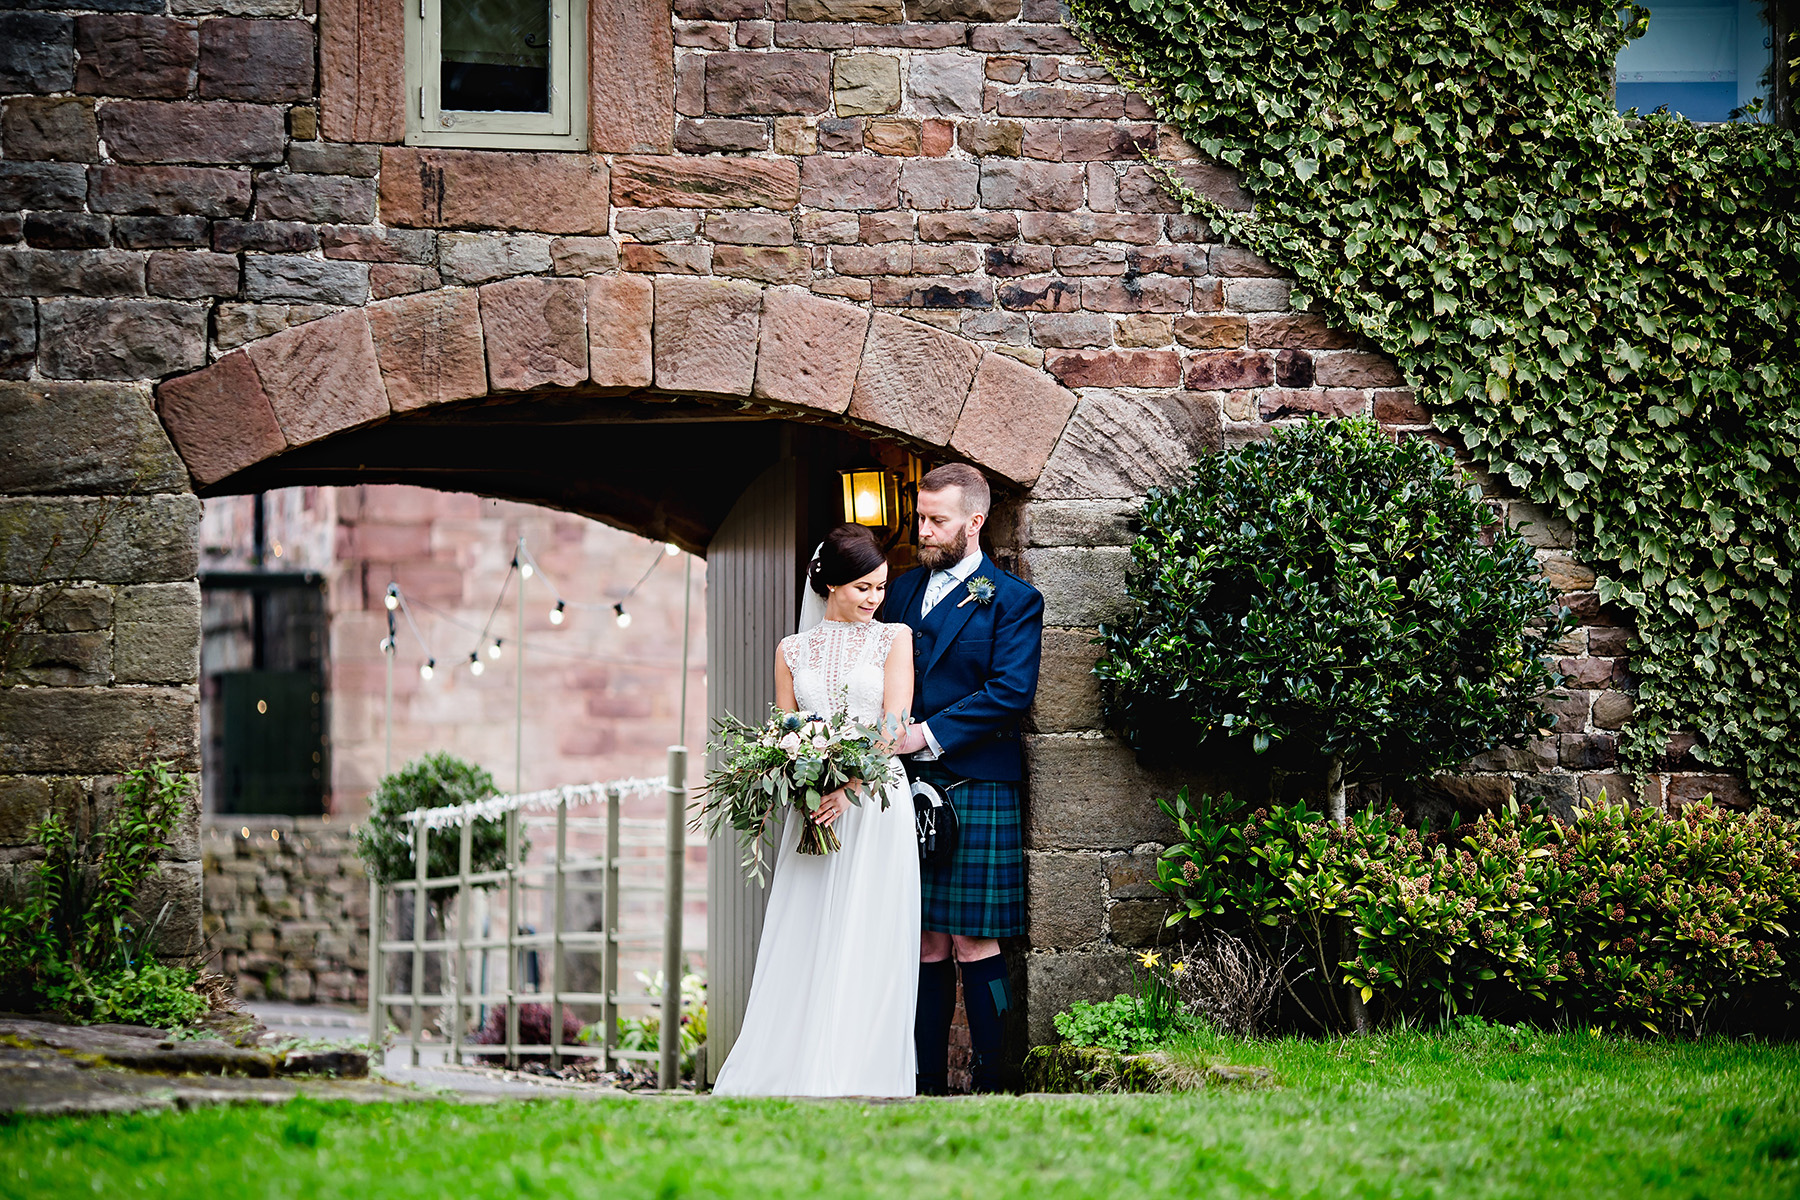 The Reception Wedding Photography at The Ashes Wedding Venue